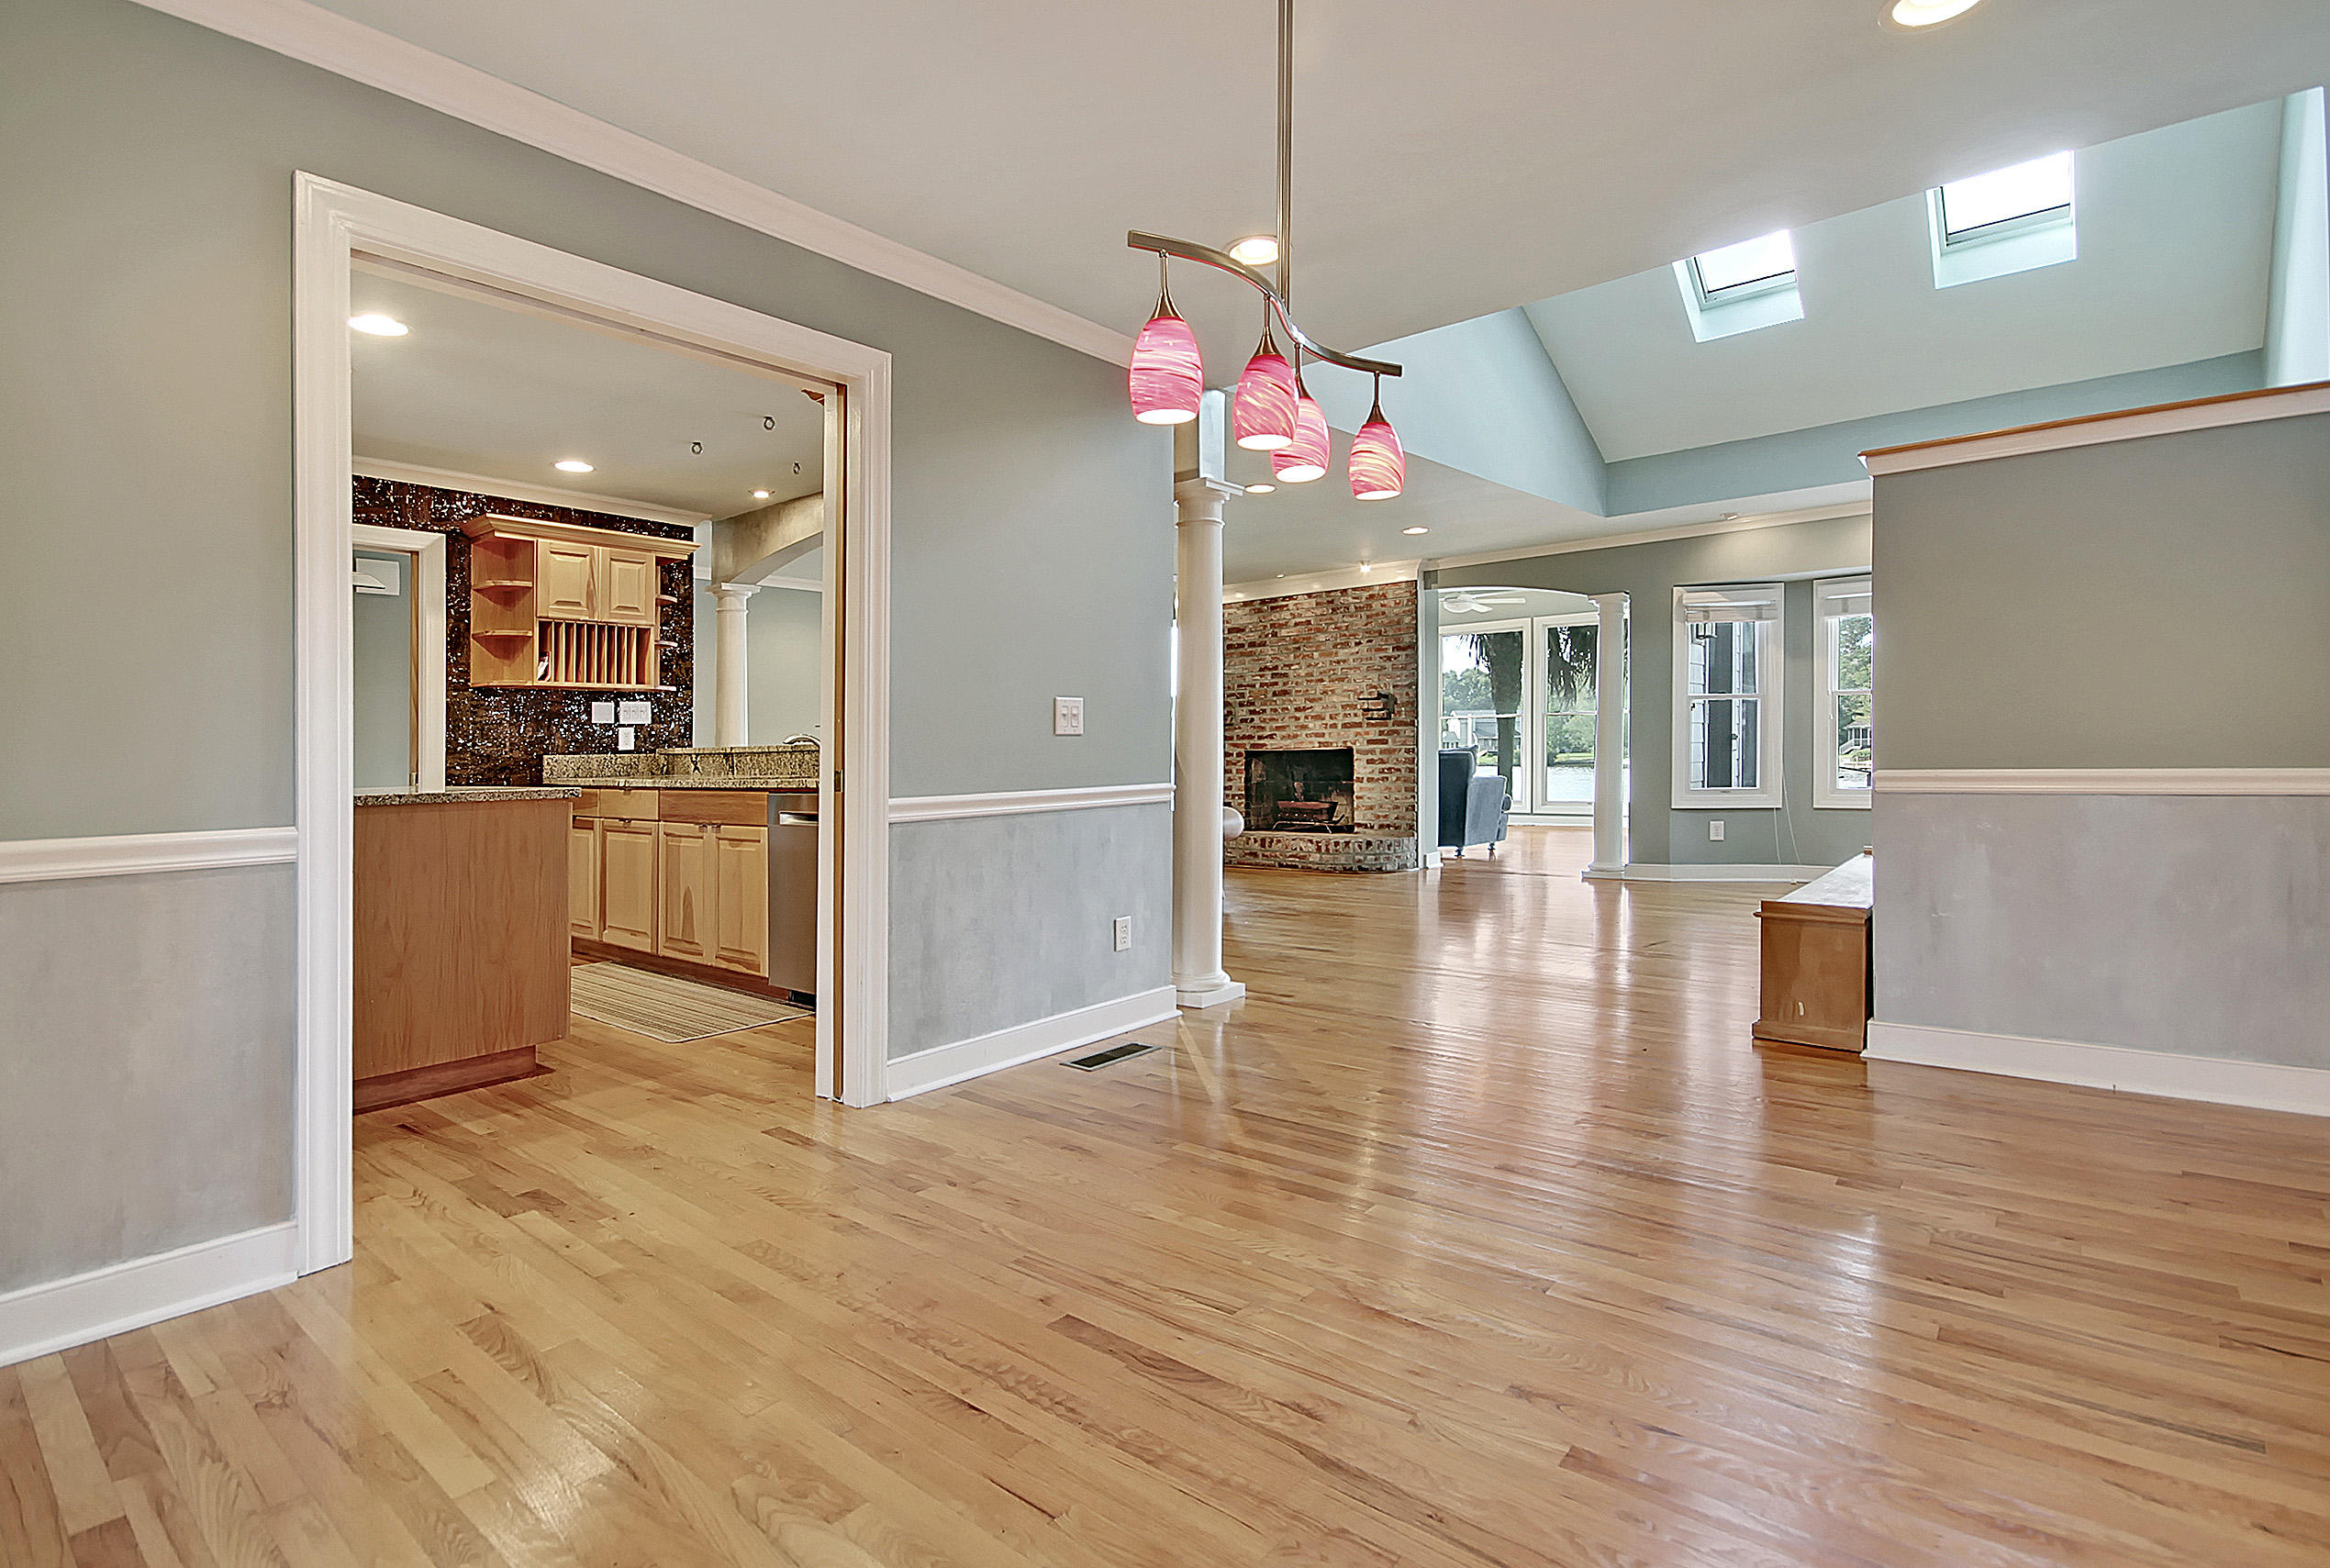 Rivers Point Homes For Sale - 4 Conch, Charleston, SC - 32